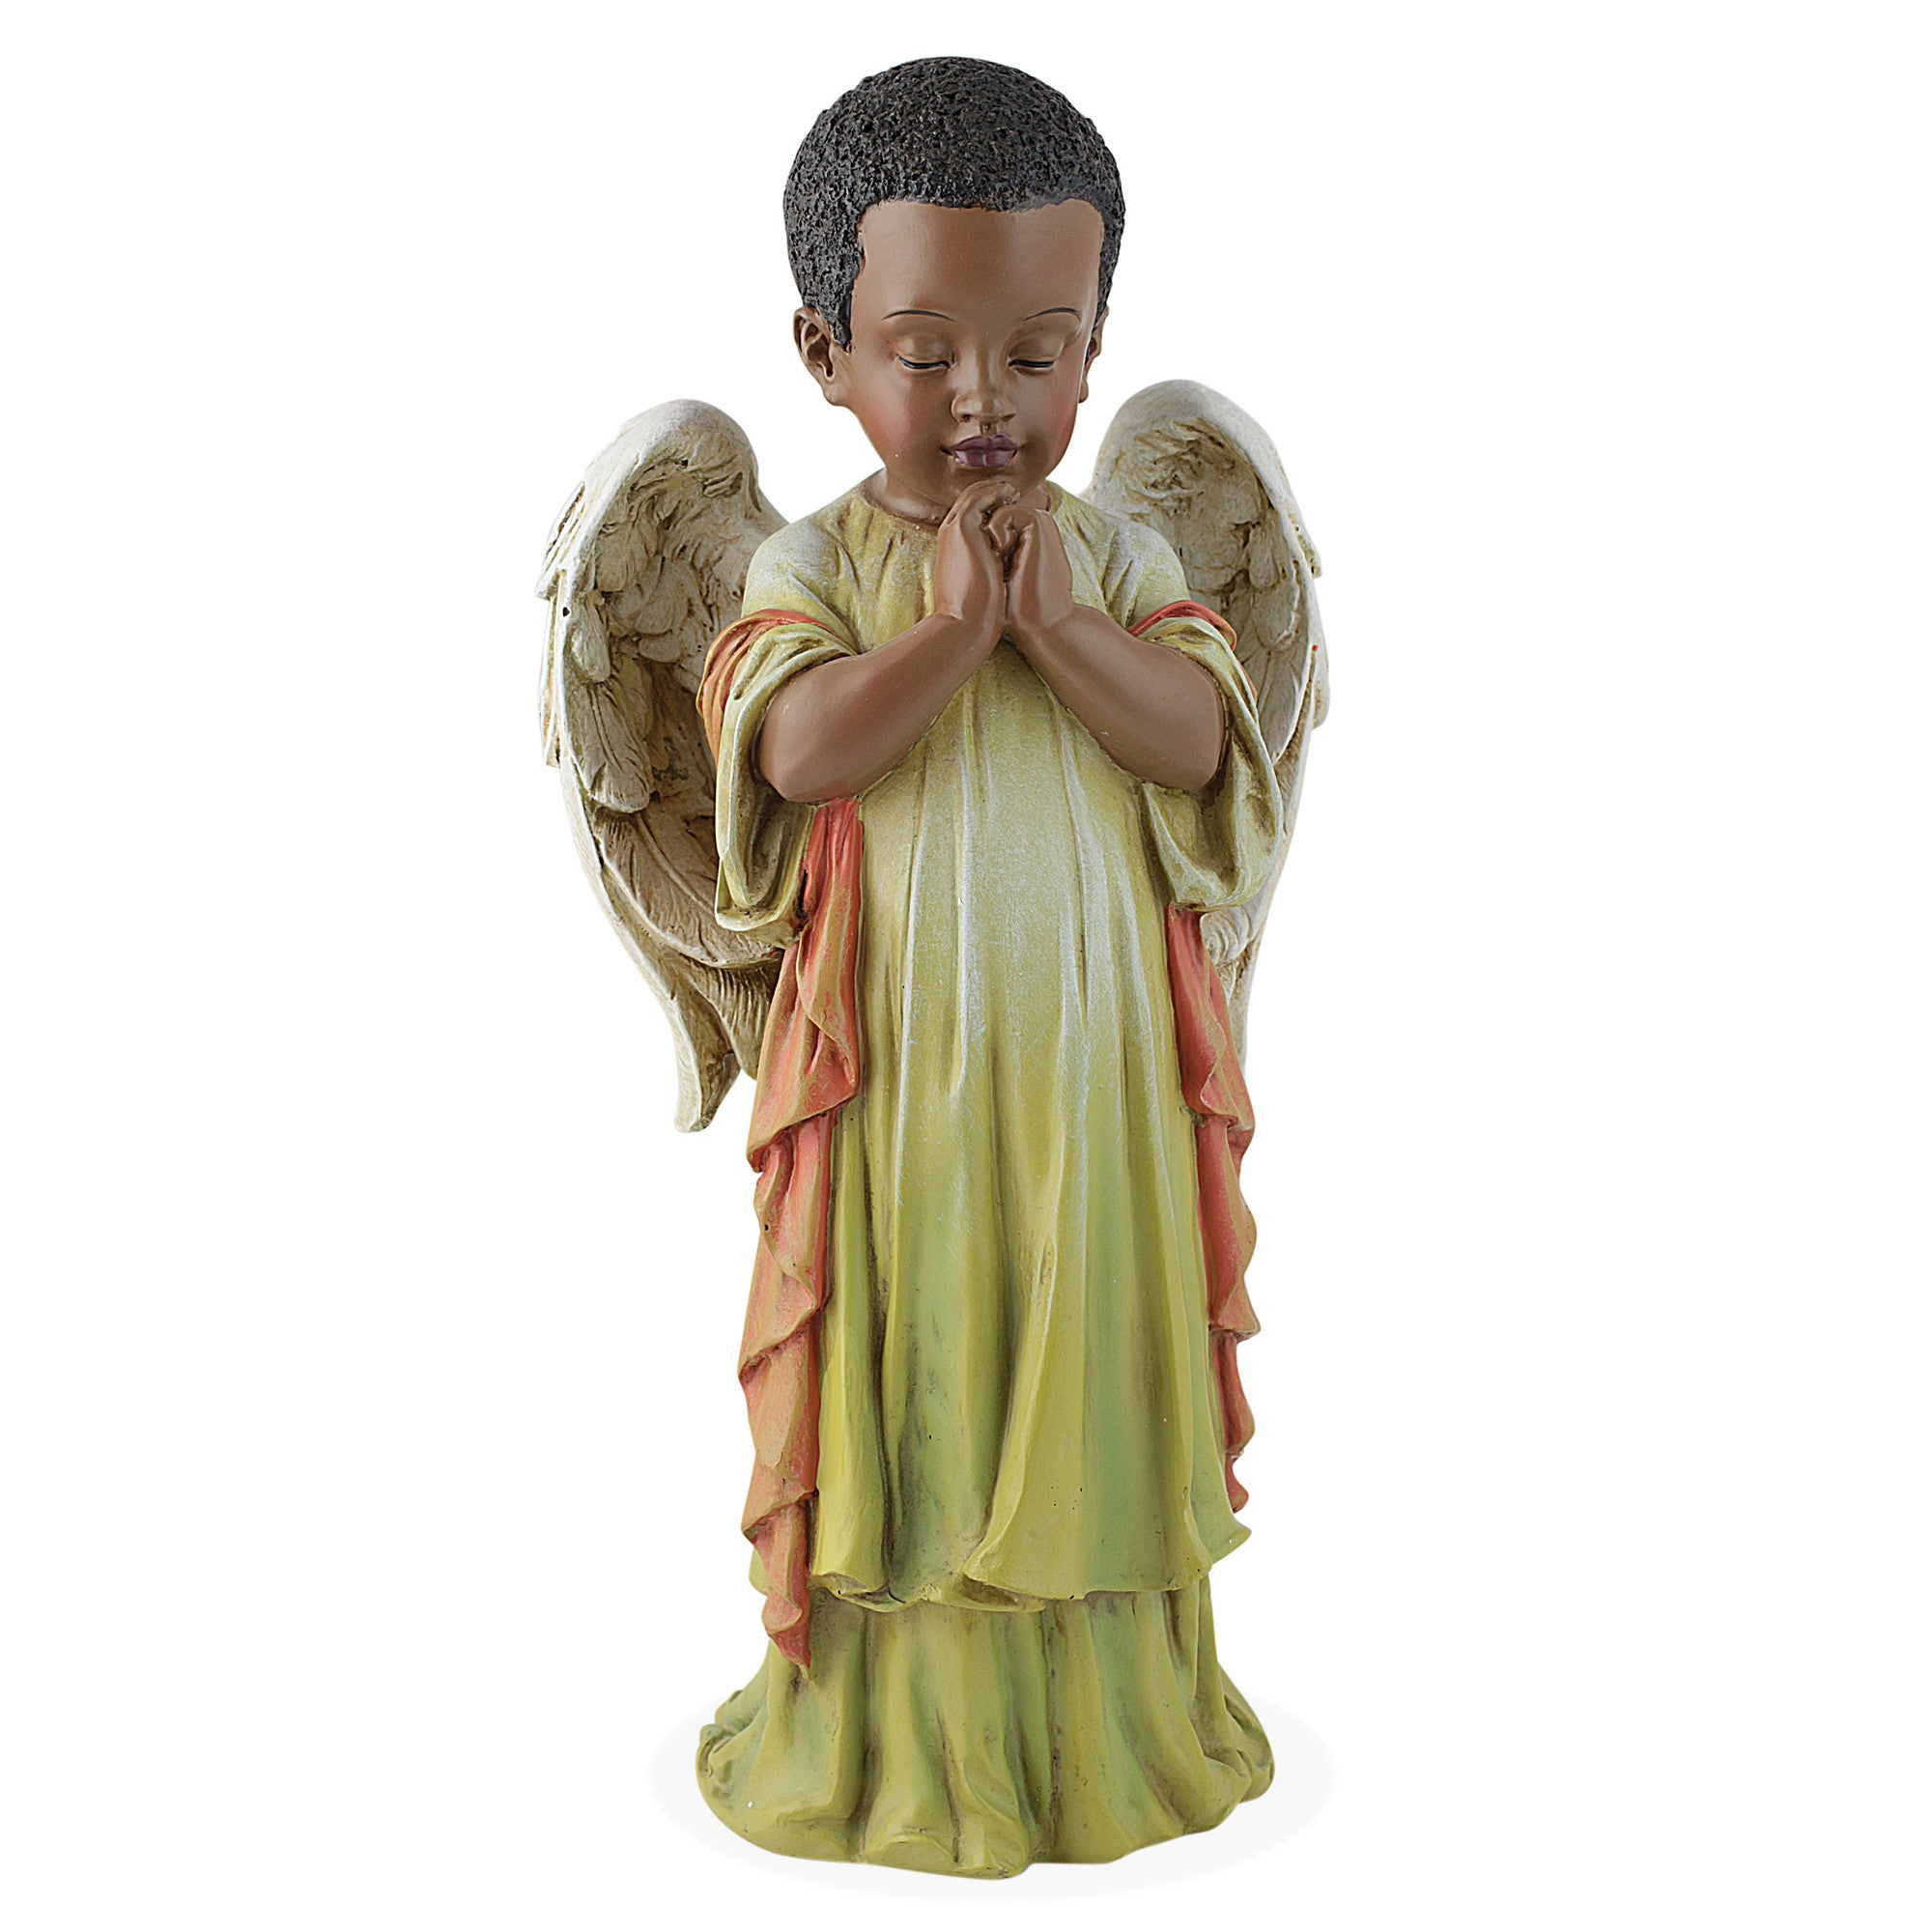 Praying Boy Angel by Napco Marketing